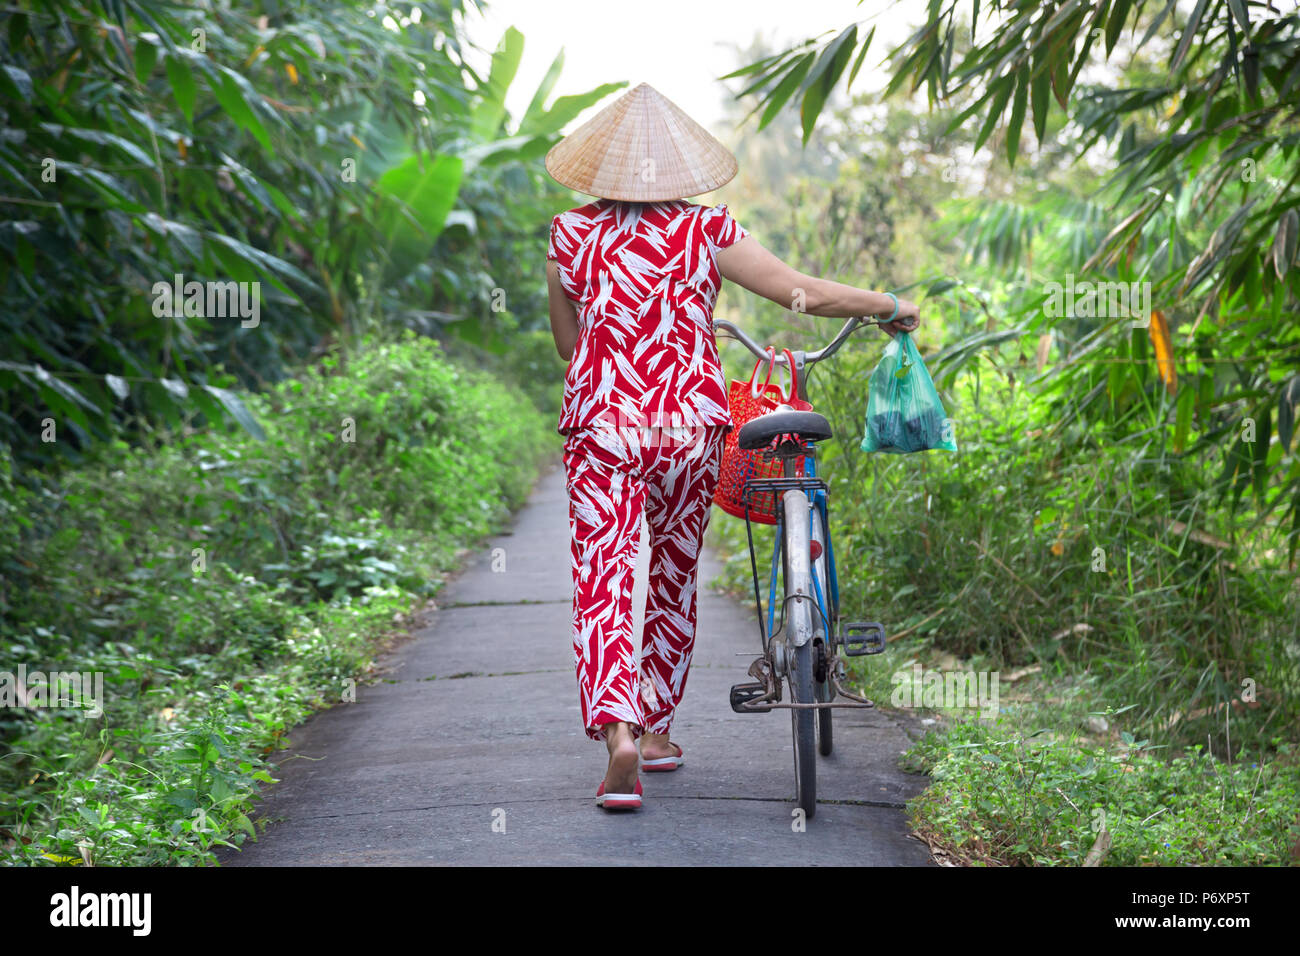 Woman with bicycle and conical hat on An Binh island , Vietnam